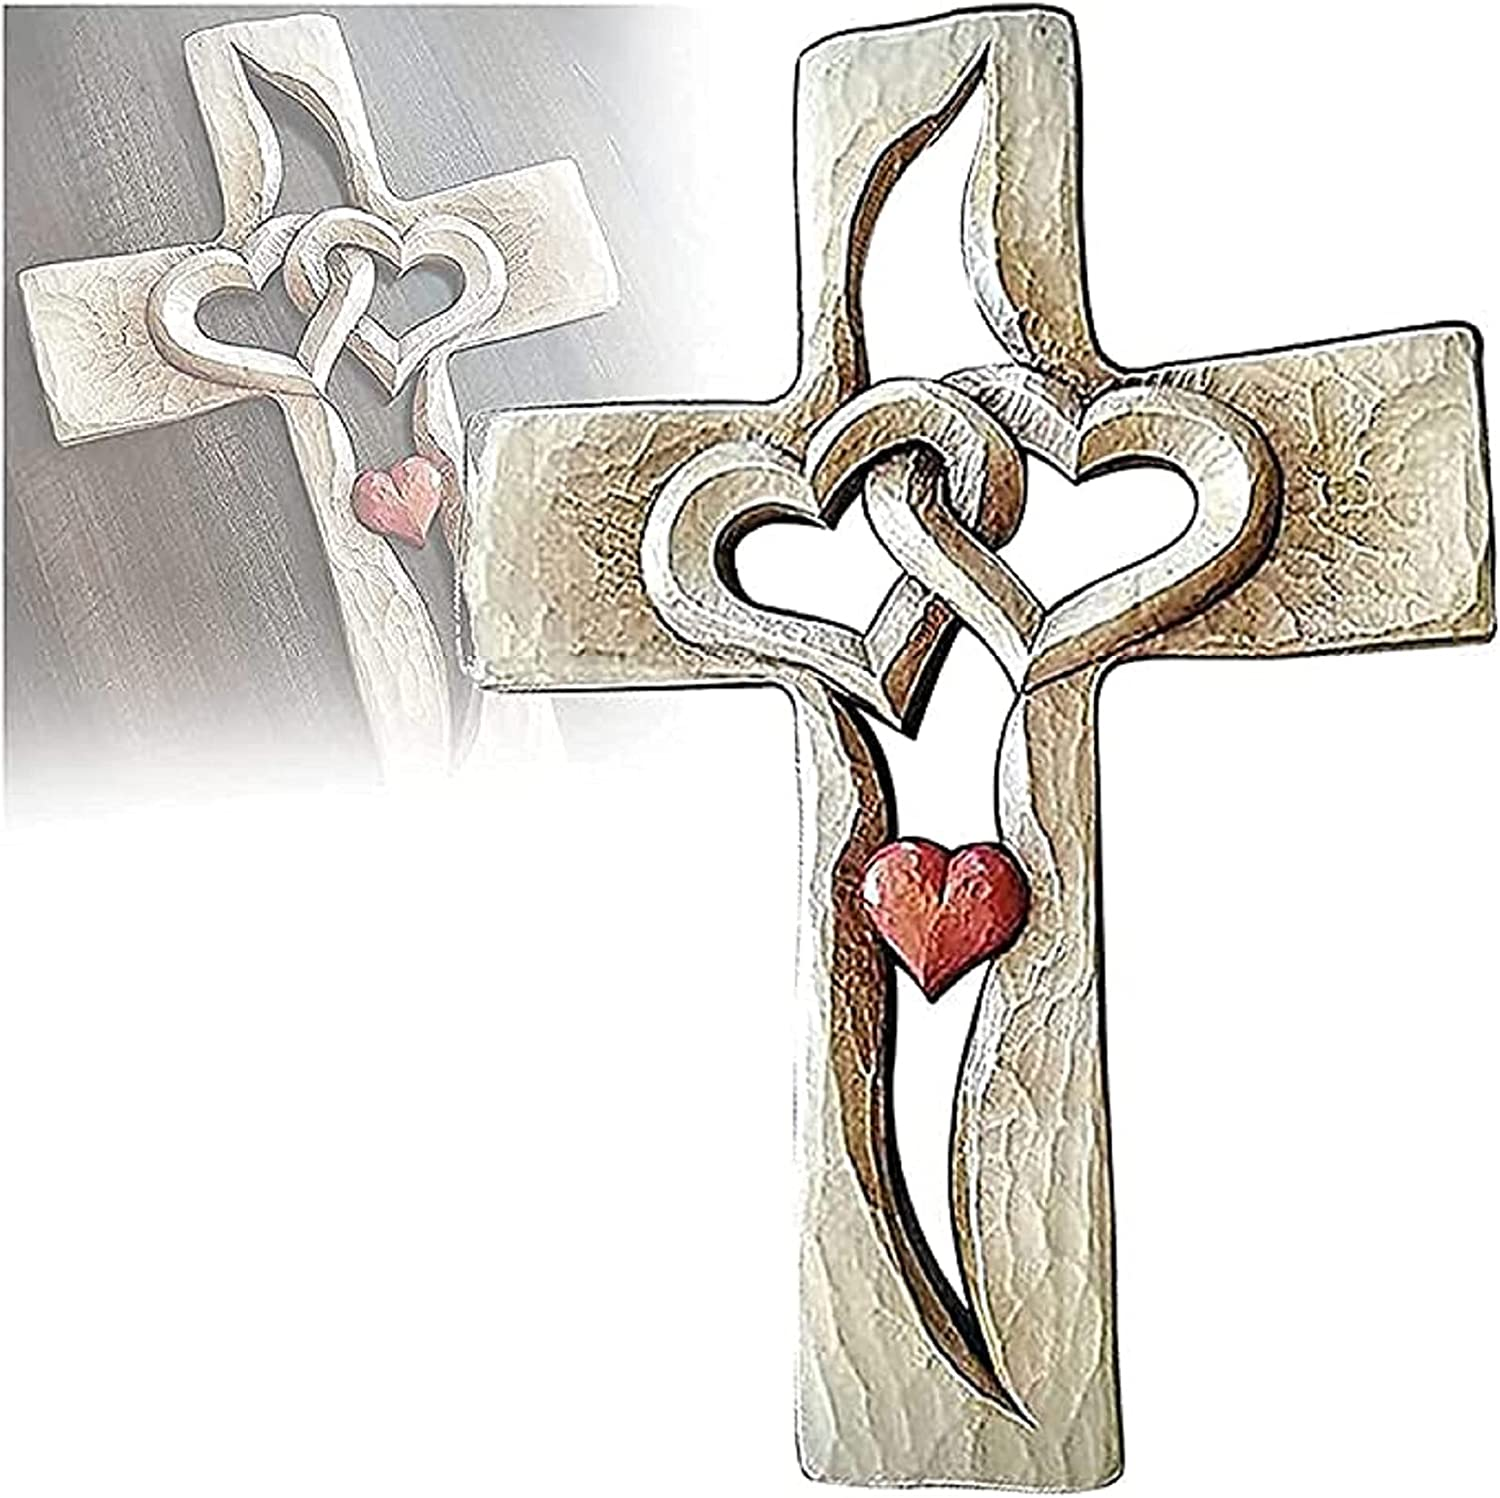 Carved Wooden Cross - Intertwined Hand Carve Wall Mail order cheap Hanging Hearts Ranking TOP7